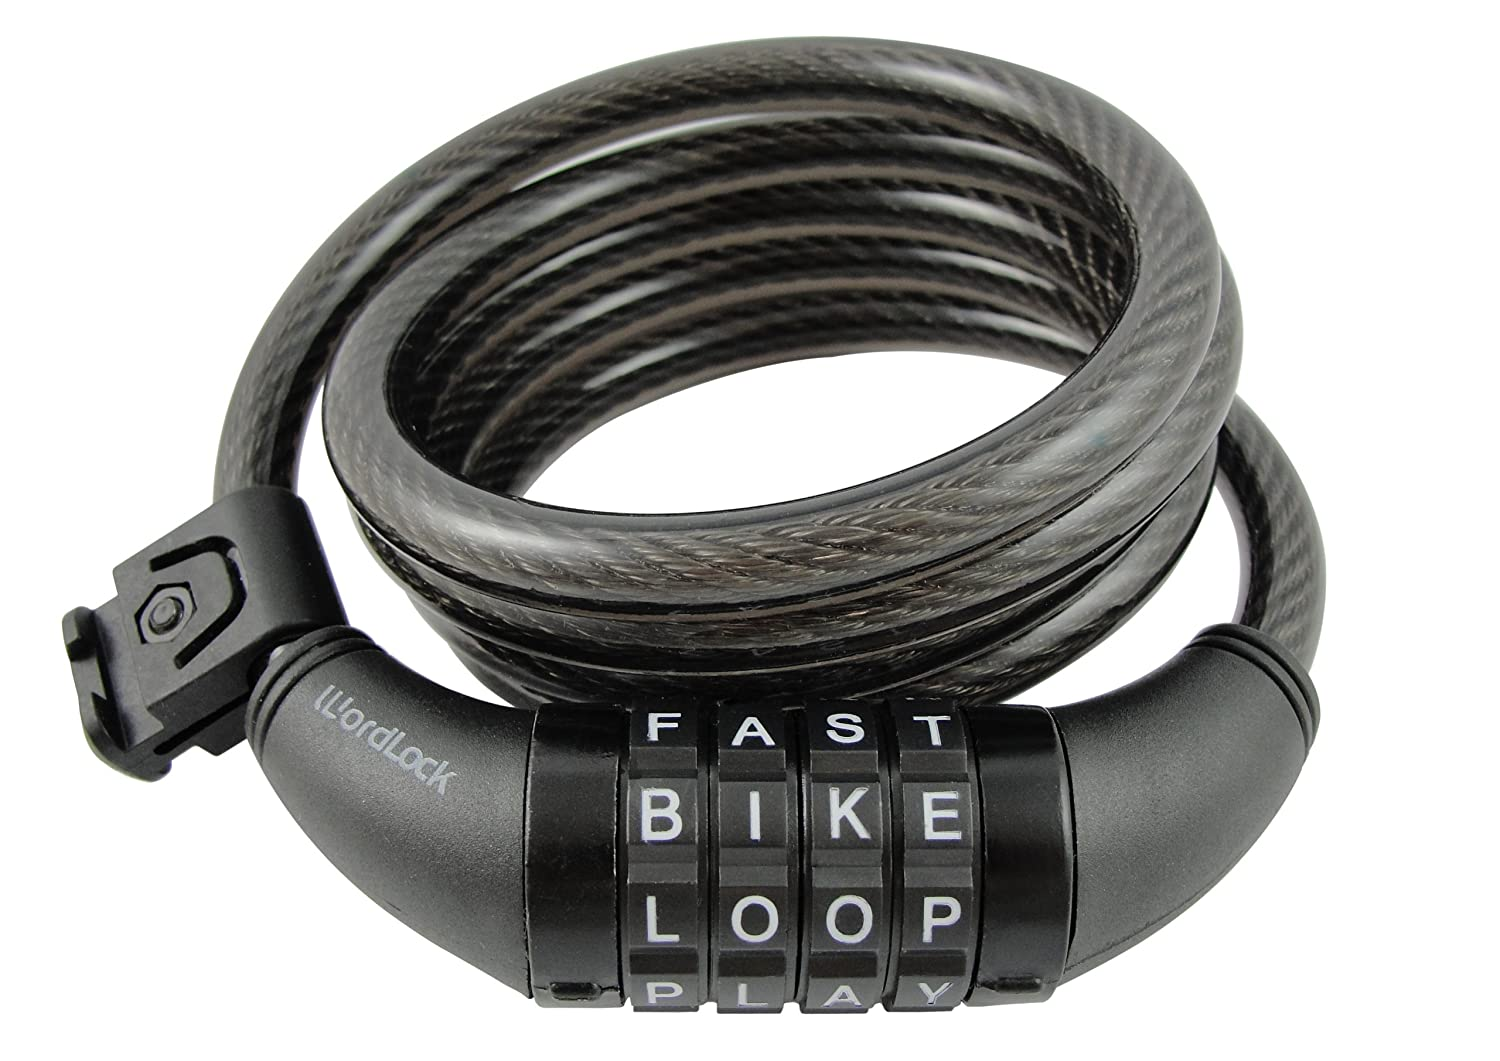 Wordlock CL-411-BK 4-Letter Combination Bike Lock Cable, Black, 5-Feet at Sears.com